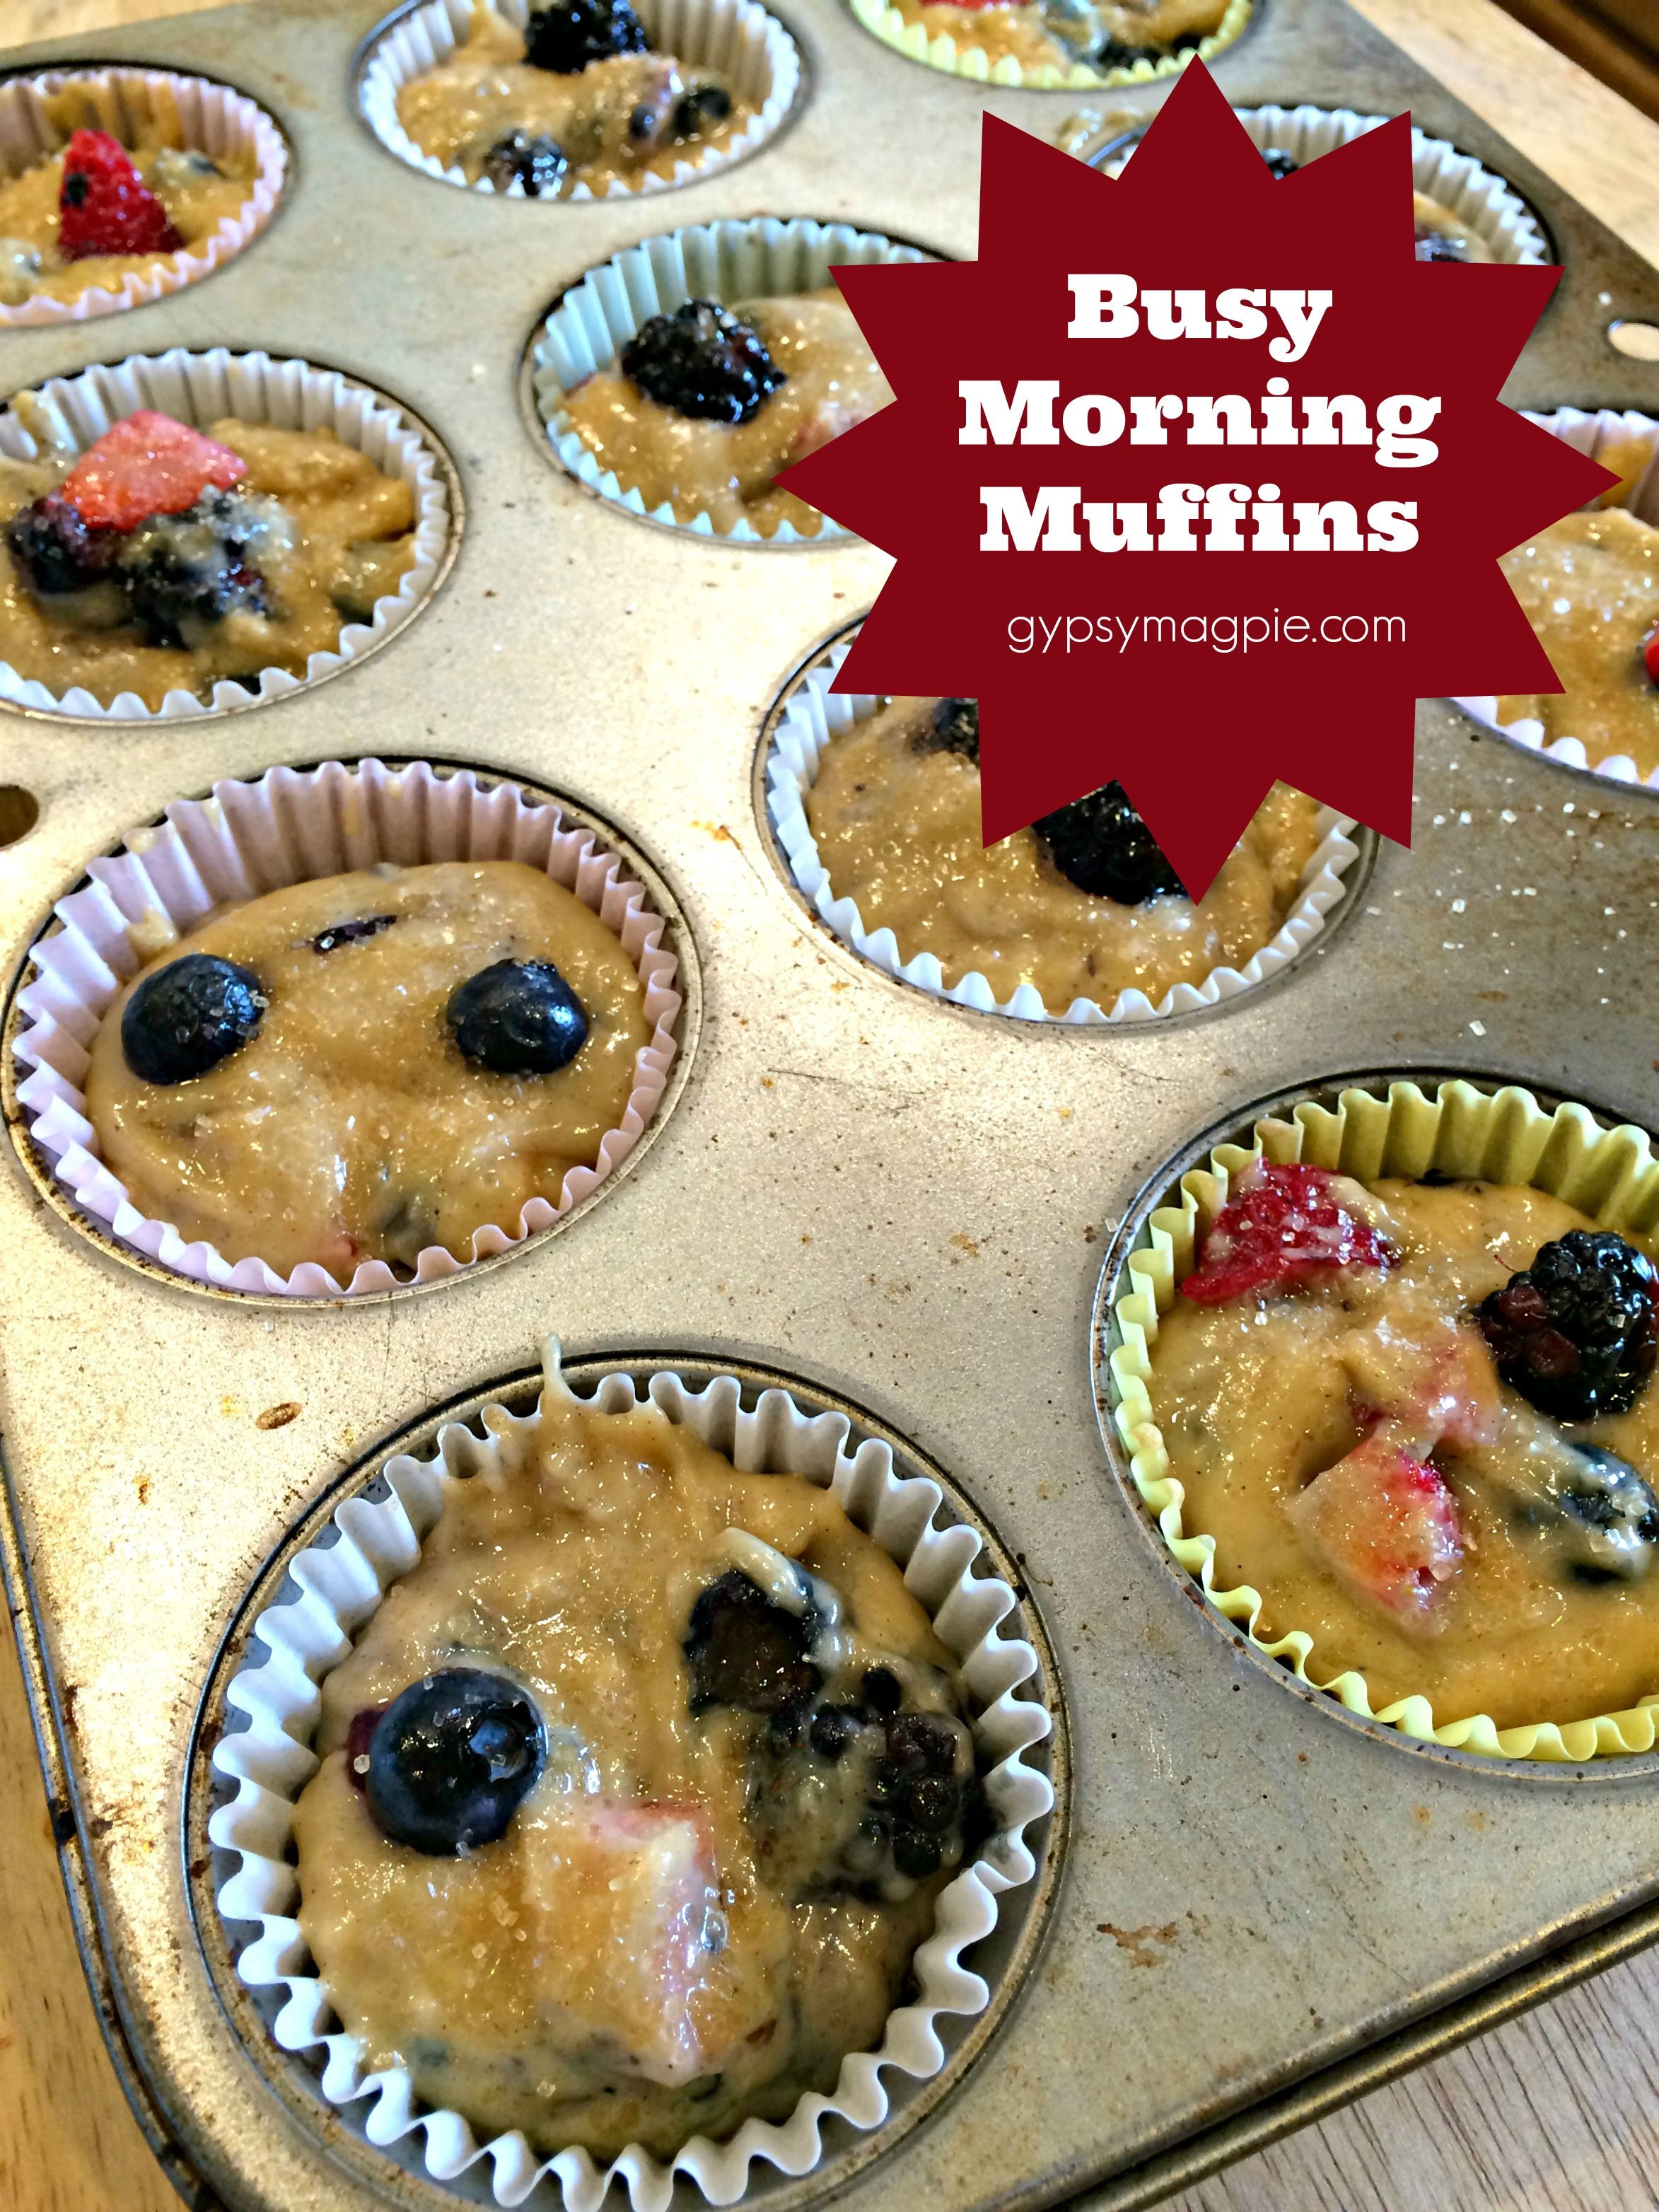 How to prep and freeze batter to have hot muffins on those busy weekday mornings {Gypsy Magpie}